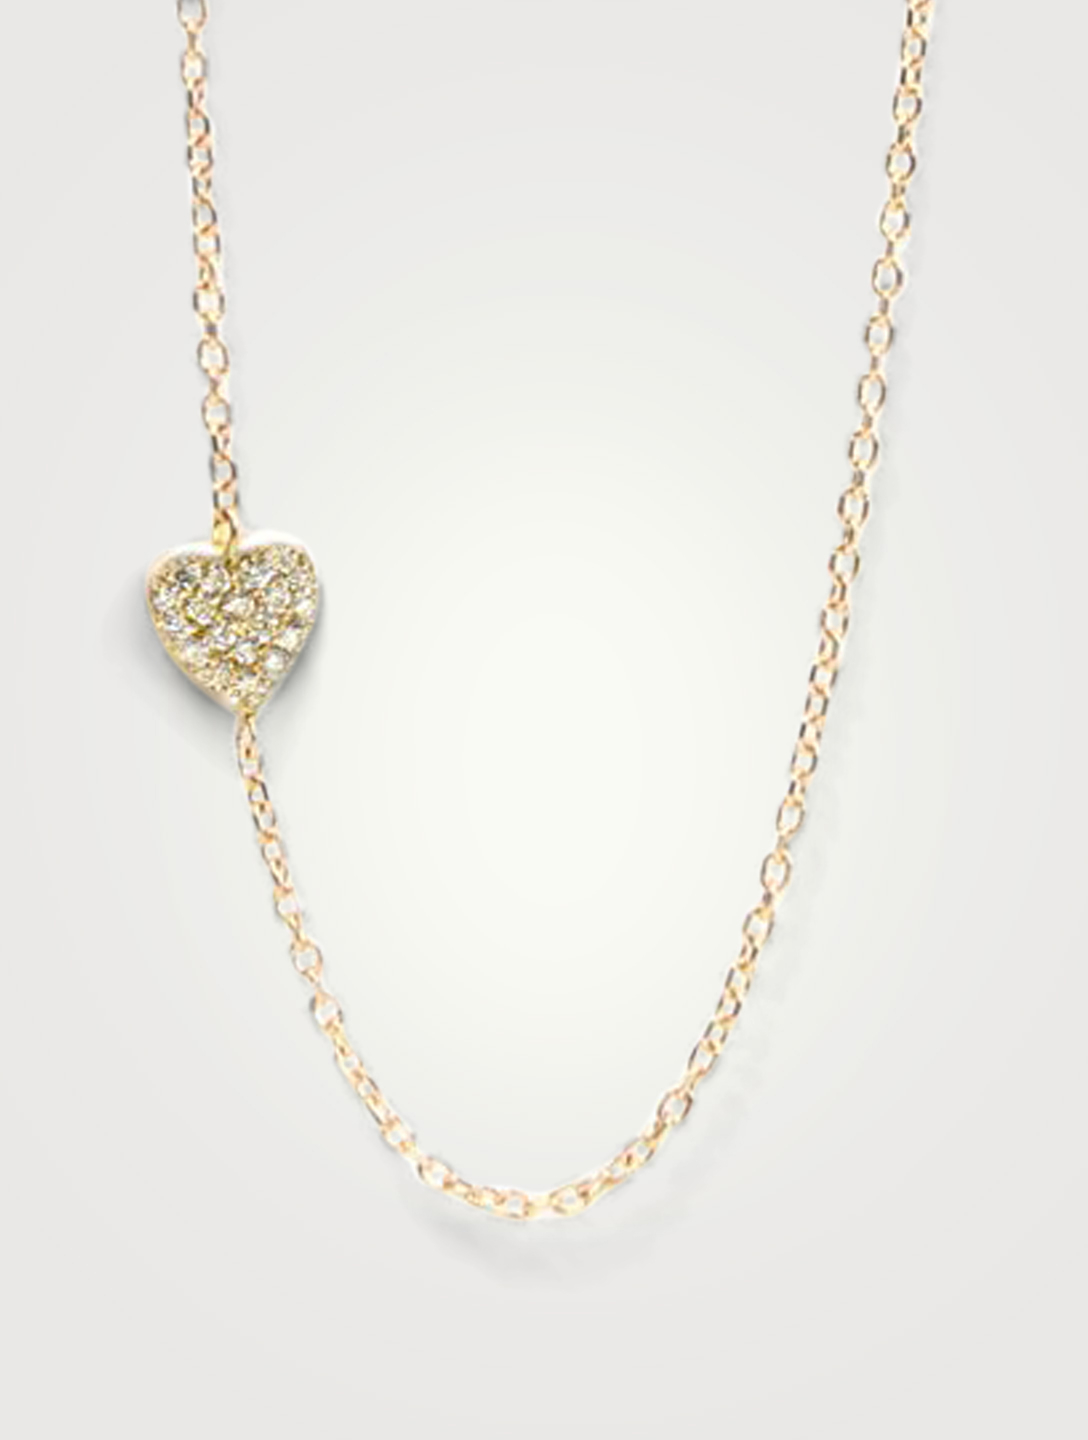 ANZIE Love Letter 14K Gold Heart Necklace With Diamonds Women's Metallic